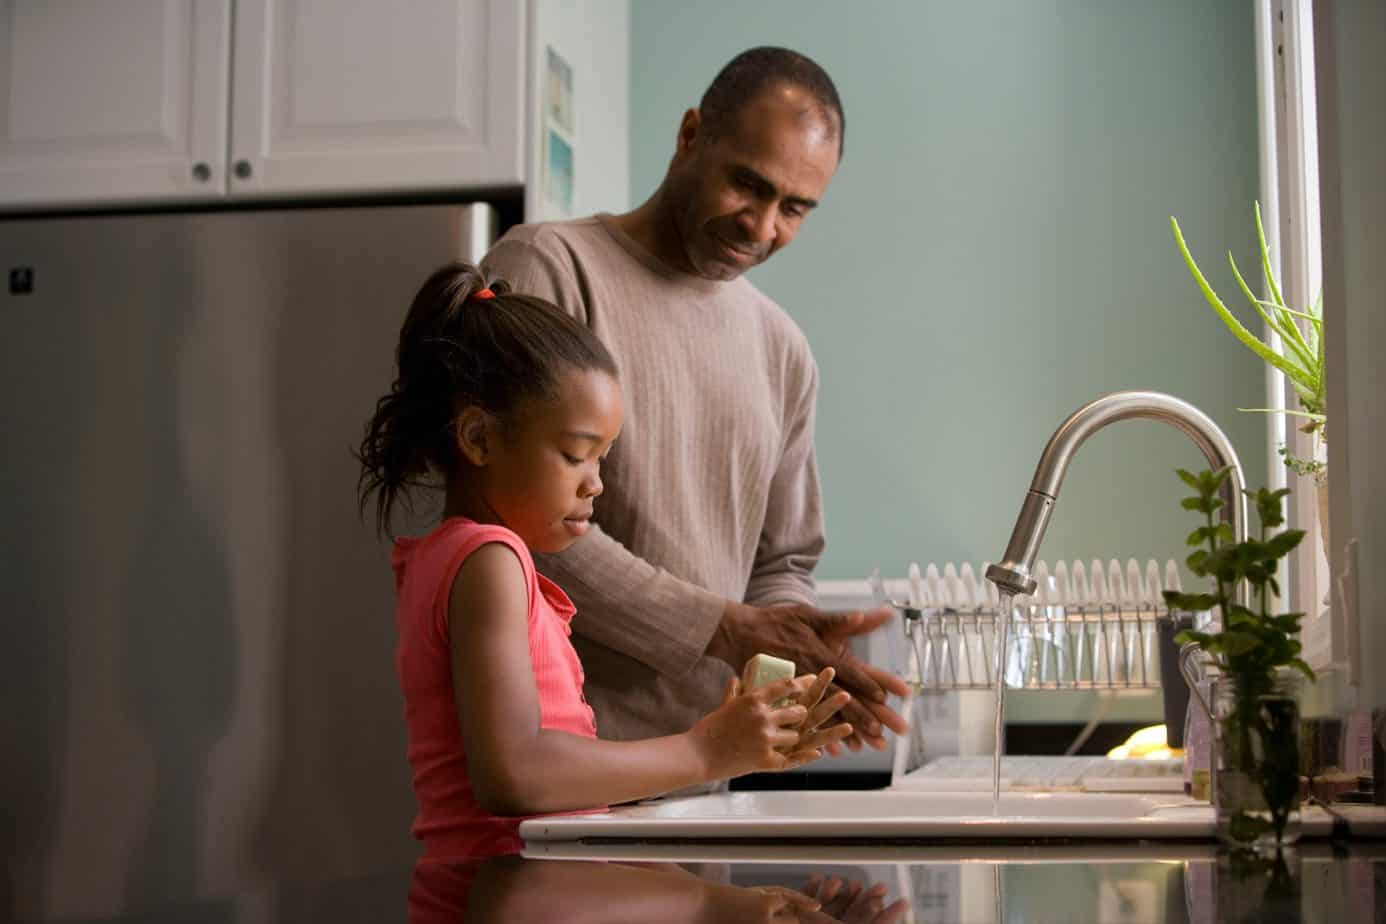 Impact of the pandemic on family and home life